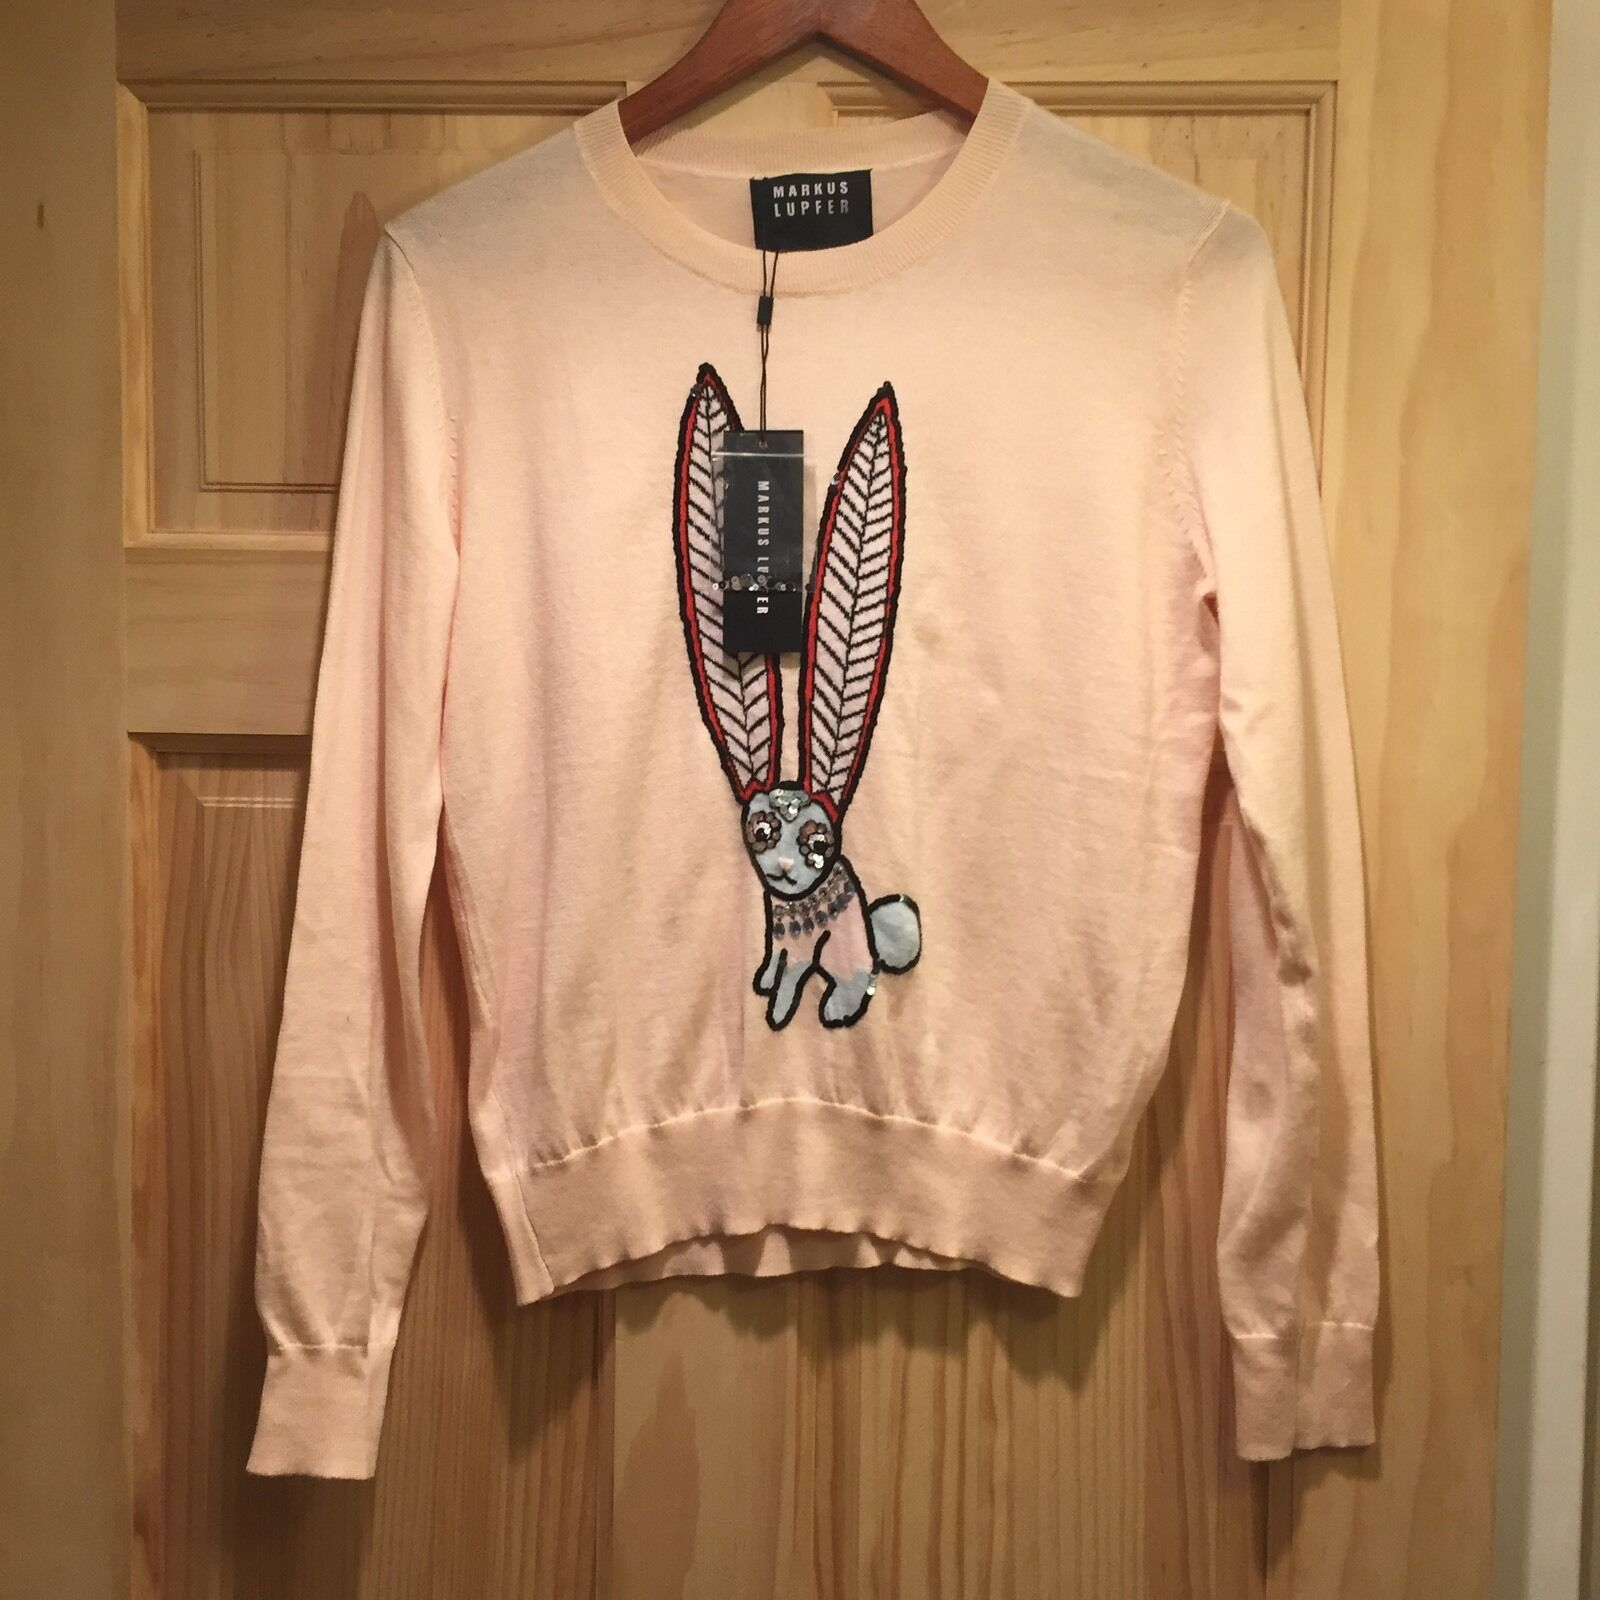 Markus Lupfer Mexican Hare Bunny Rabbit Sequin Sweater Sweater Sweater Free Embellished People 04ebdd